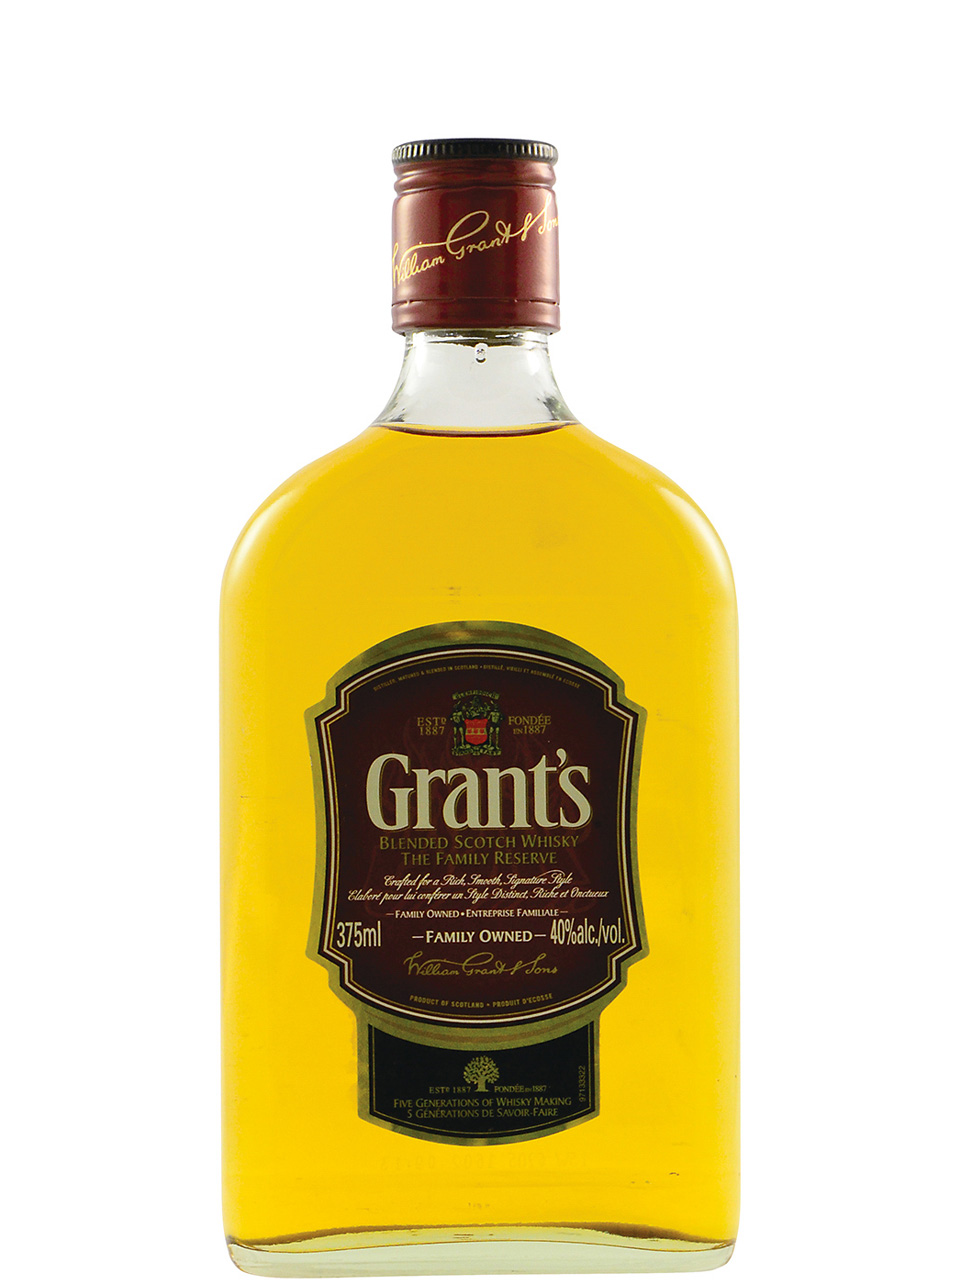 Grant's The Family Reserve Blended Scotch Whisky